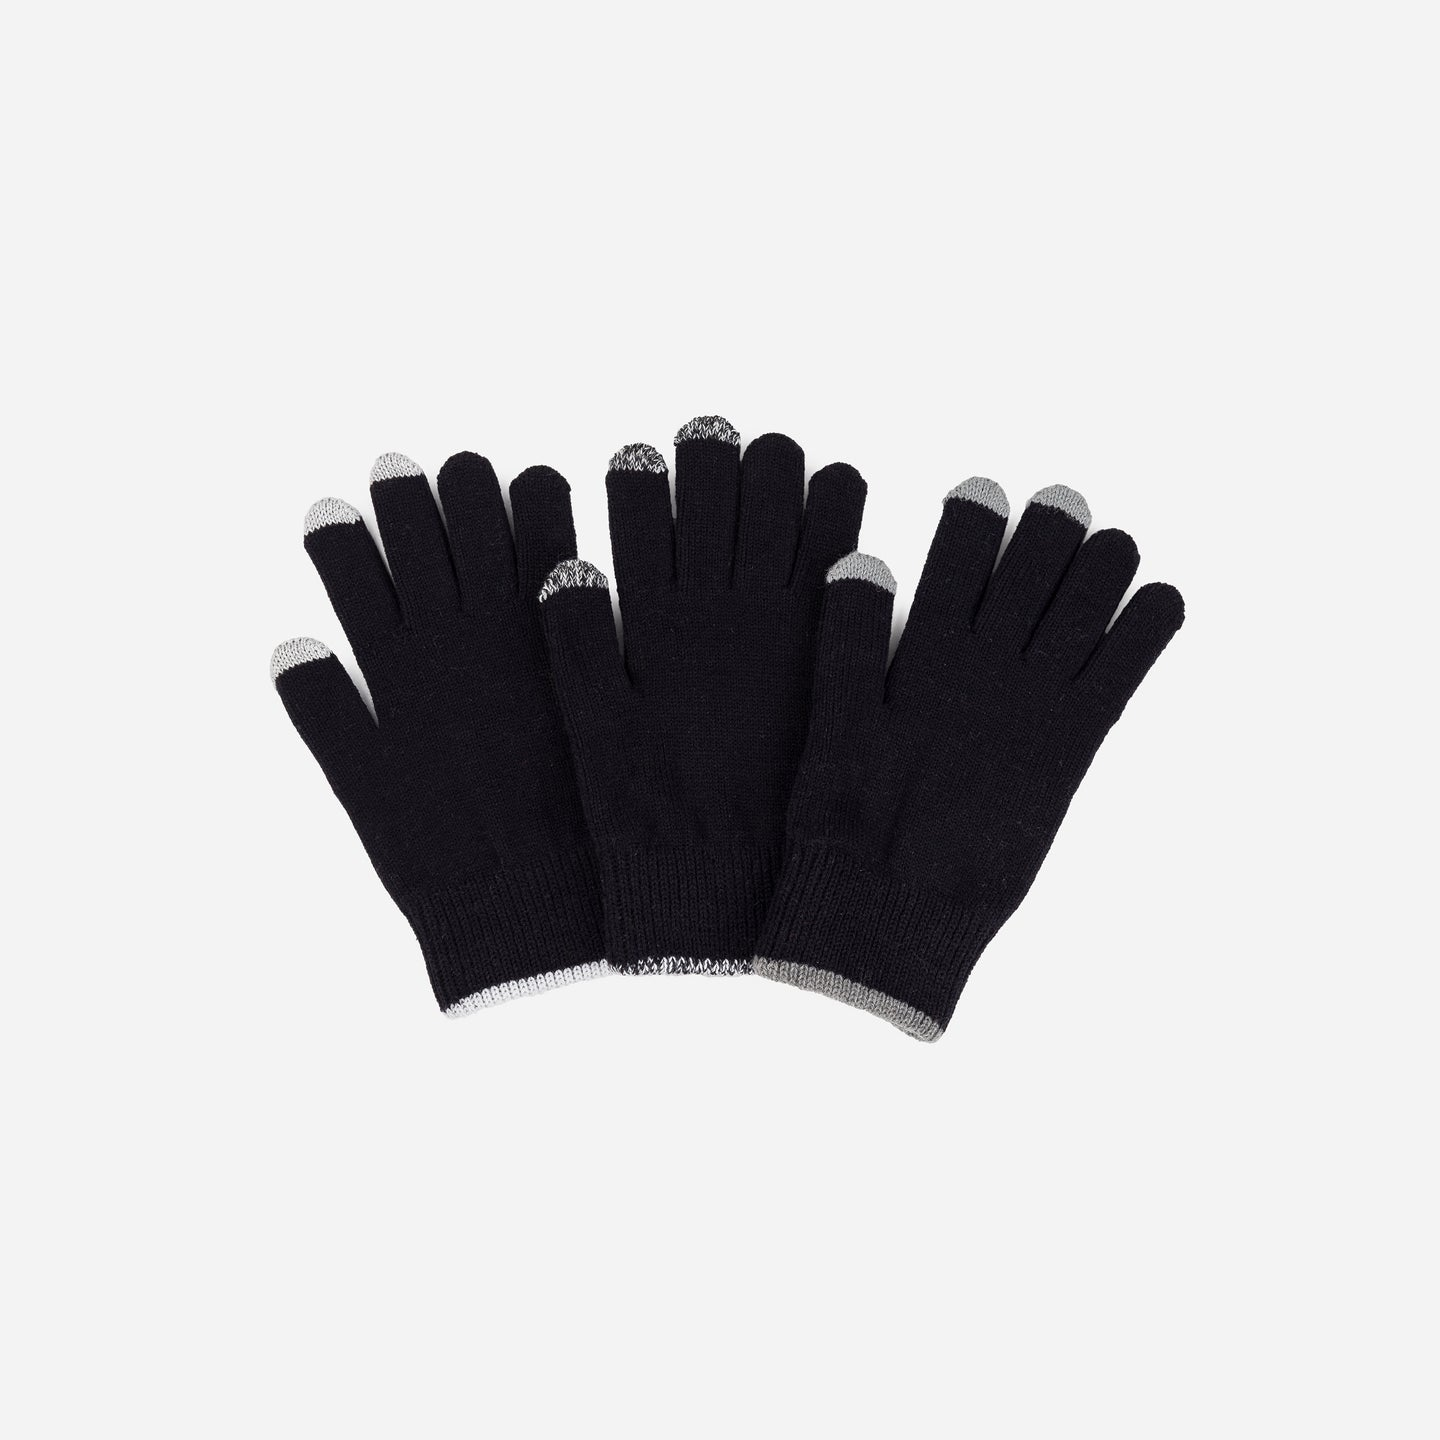 Pair and a Spare 3 Three Touchscreen Gloves